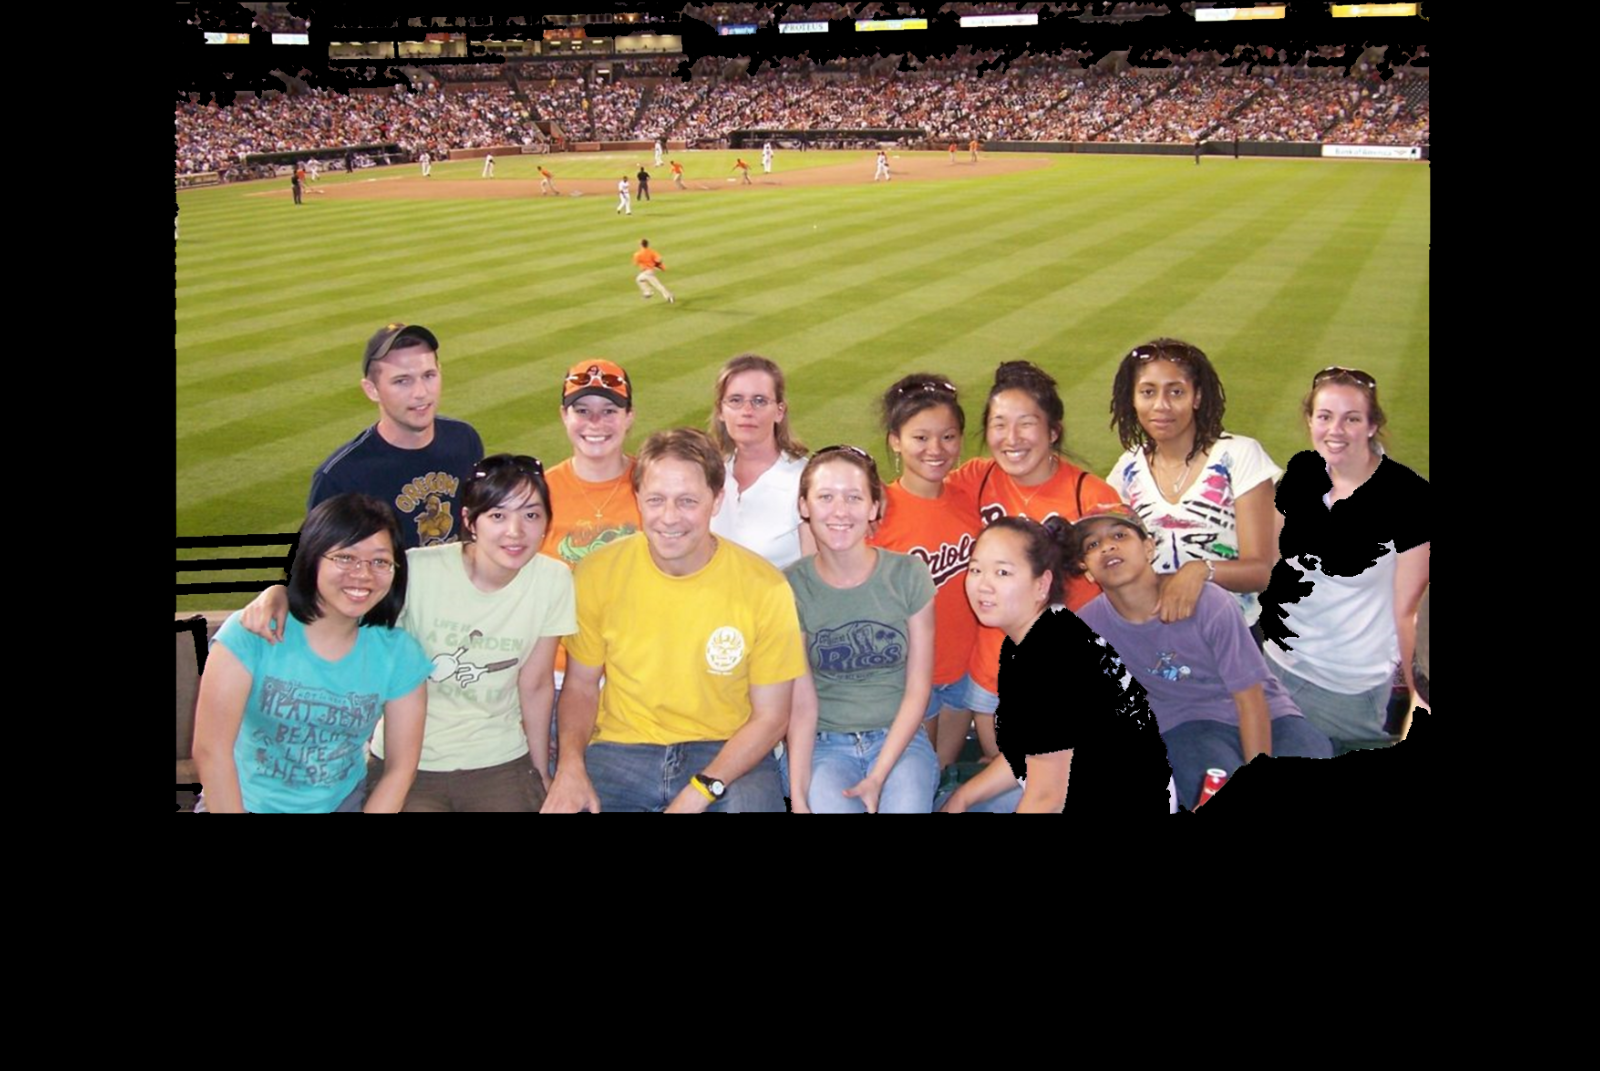 Leips Lab at the Oriole Game, Summer 2007